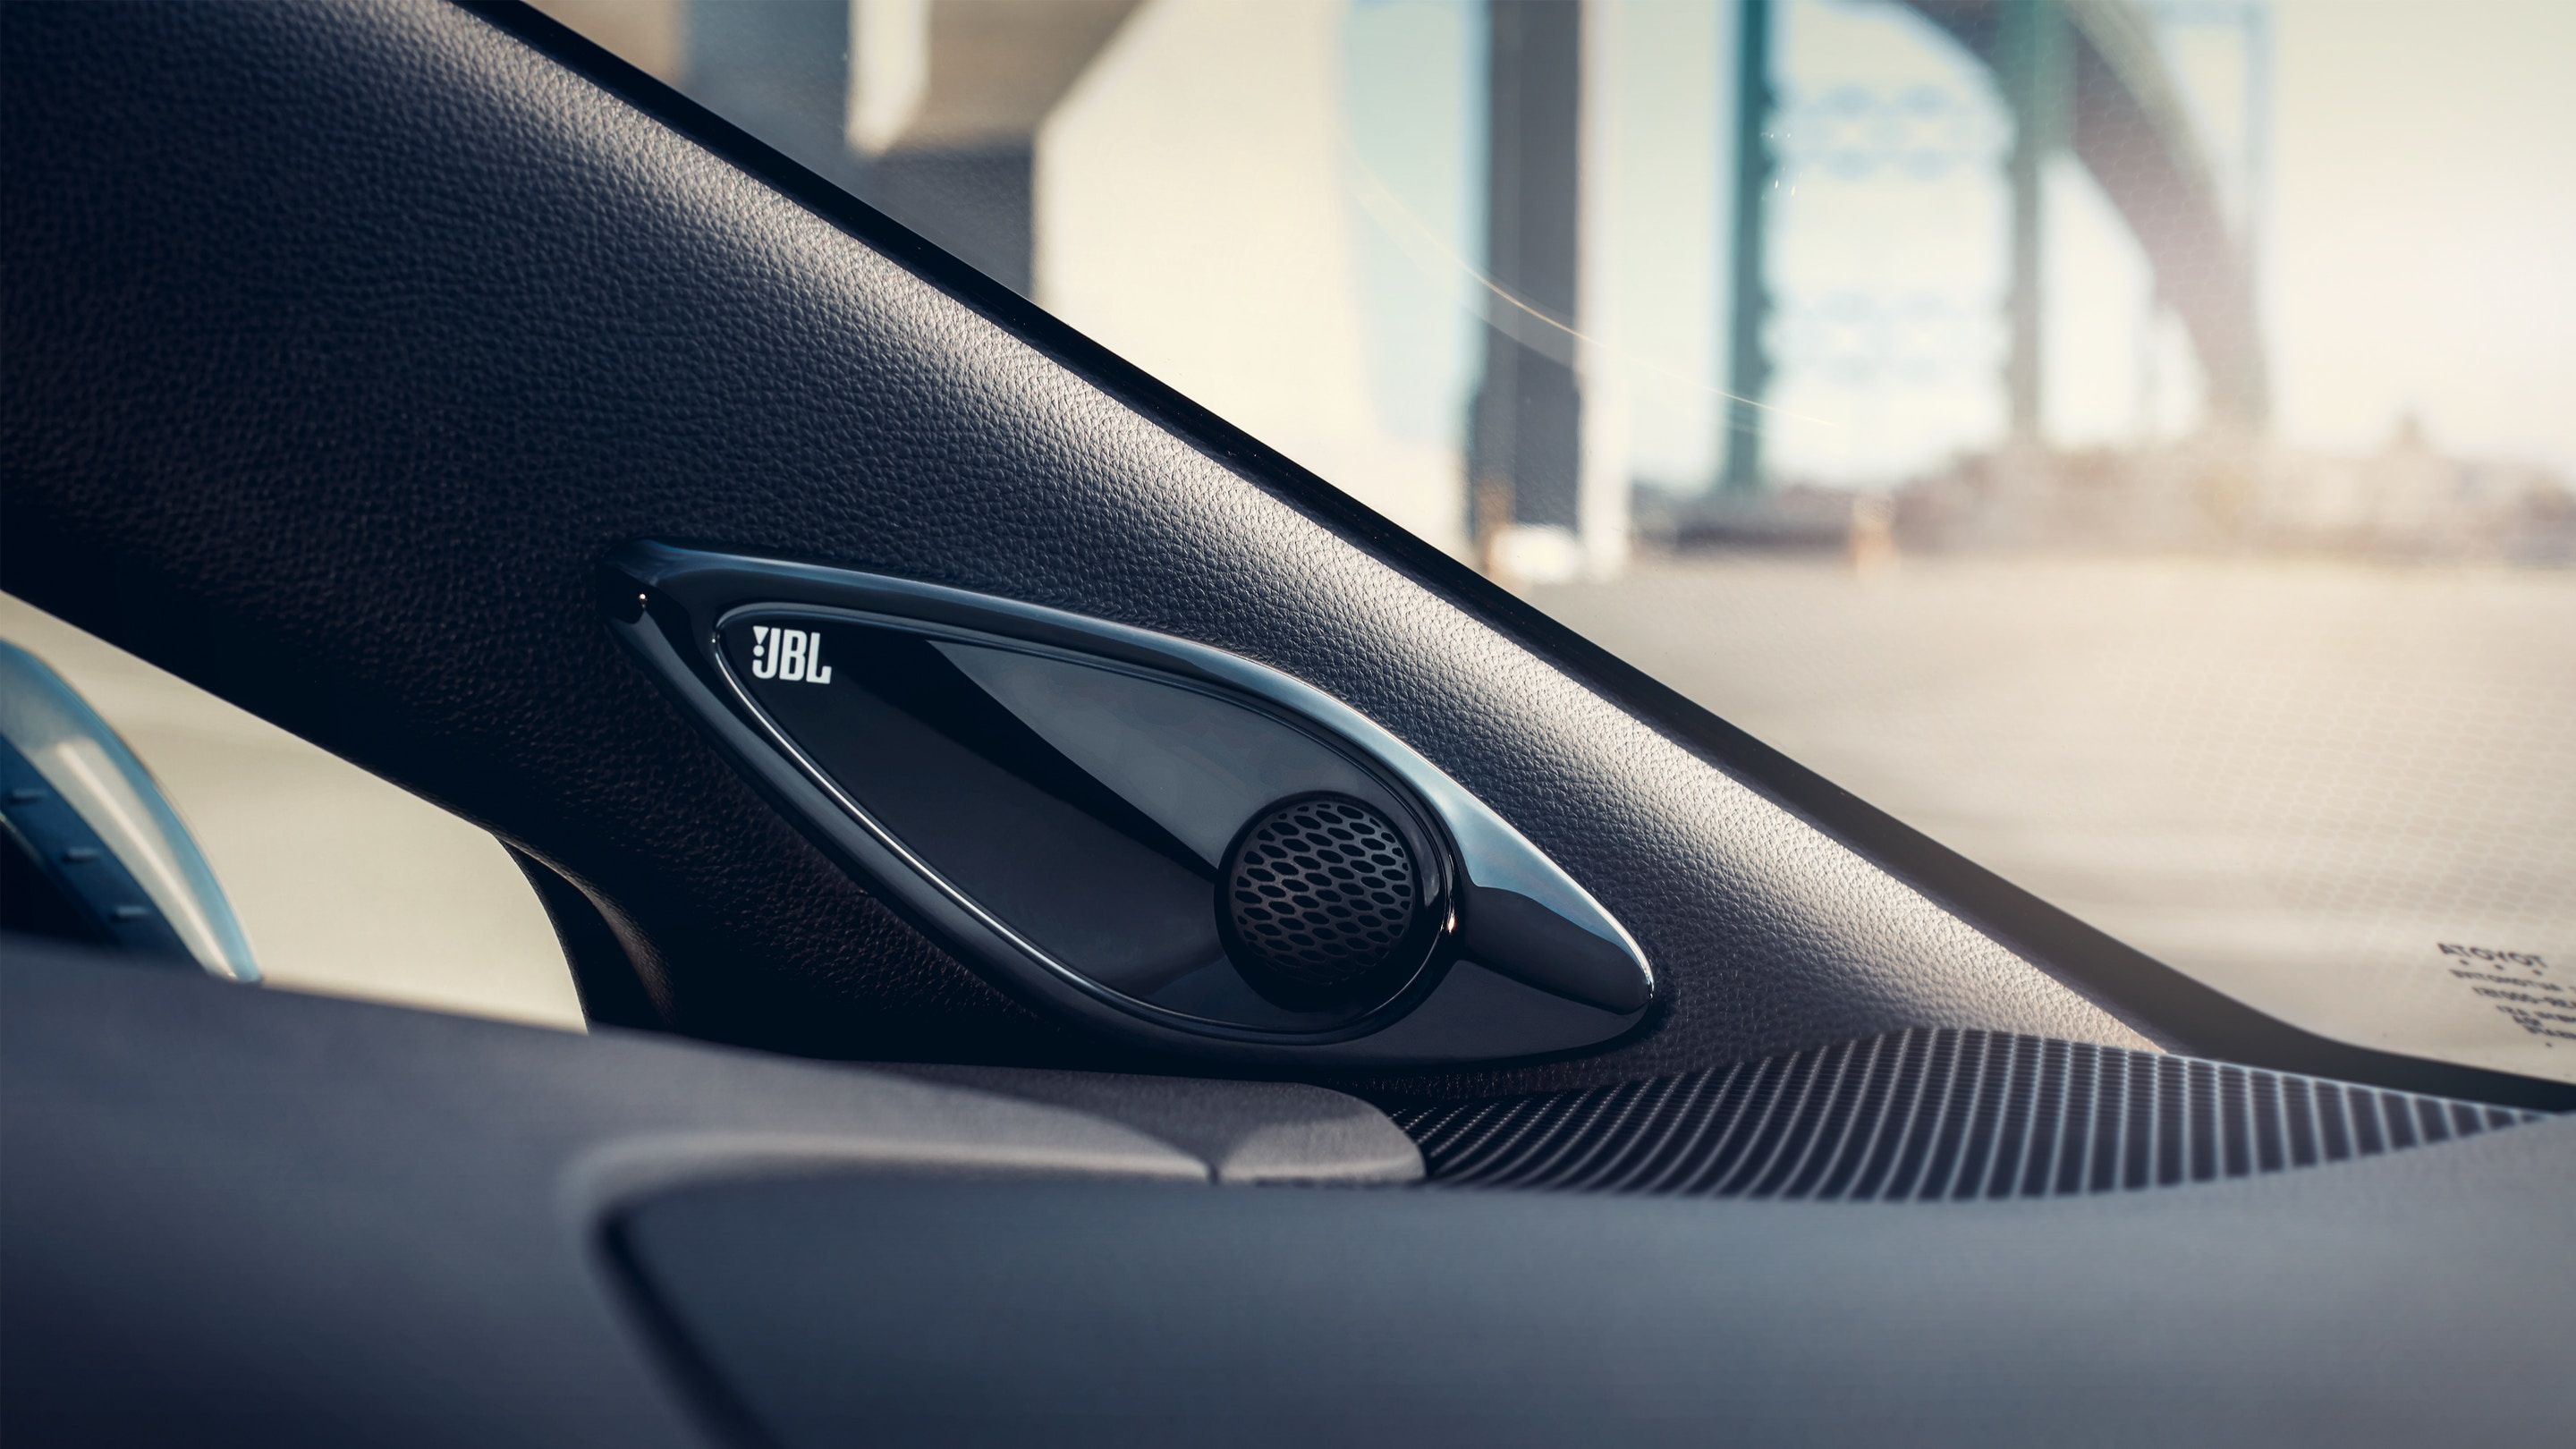 JBL® Sound System in the 2020 Corolla